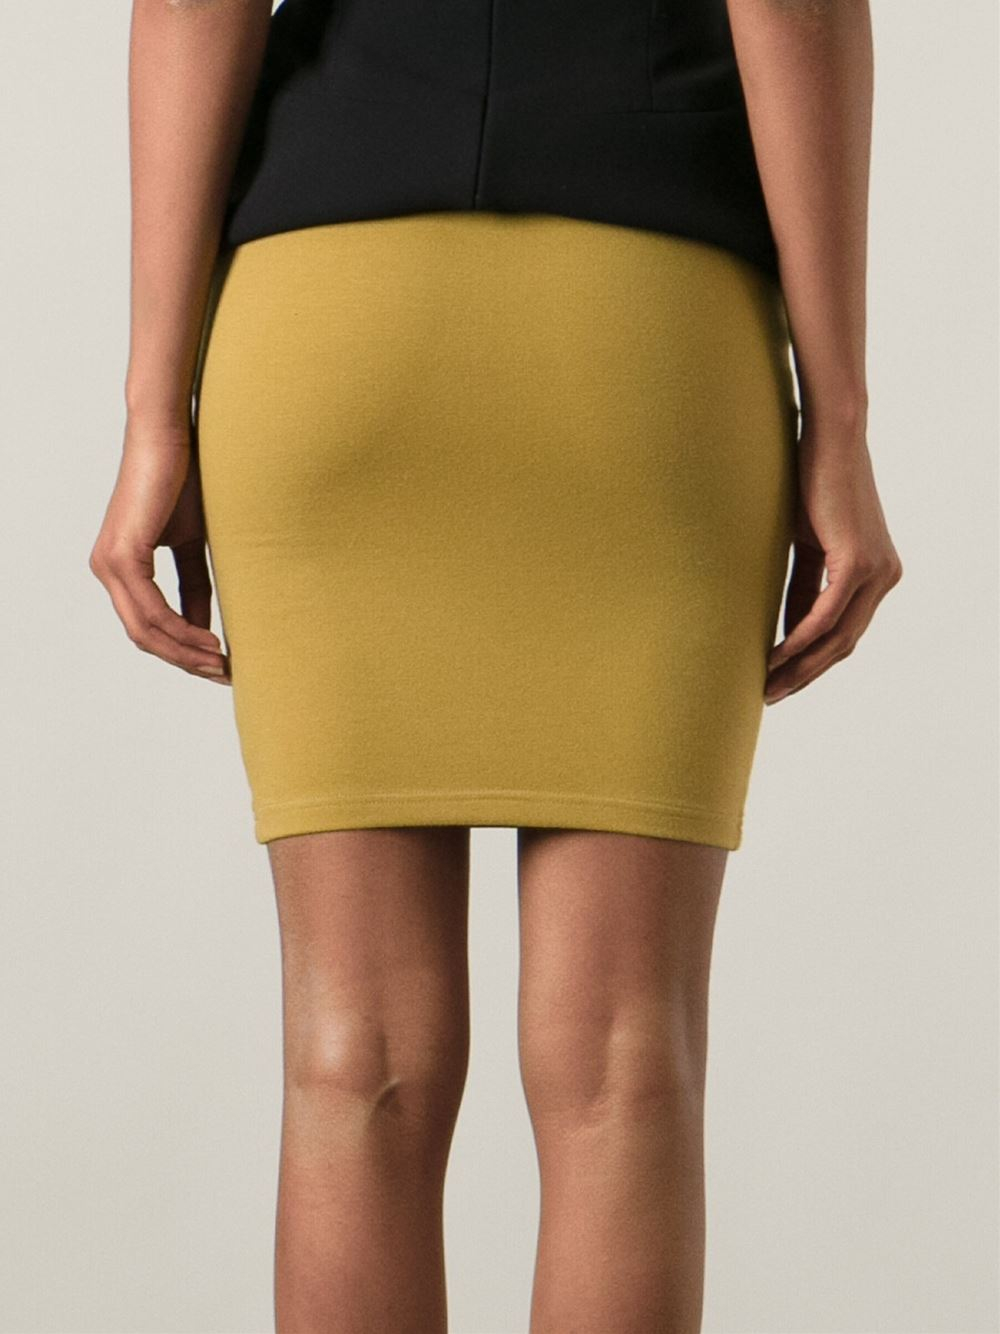 jean paul gaultier high waist bodycon skirt in yellow